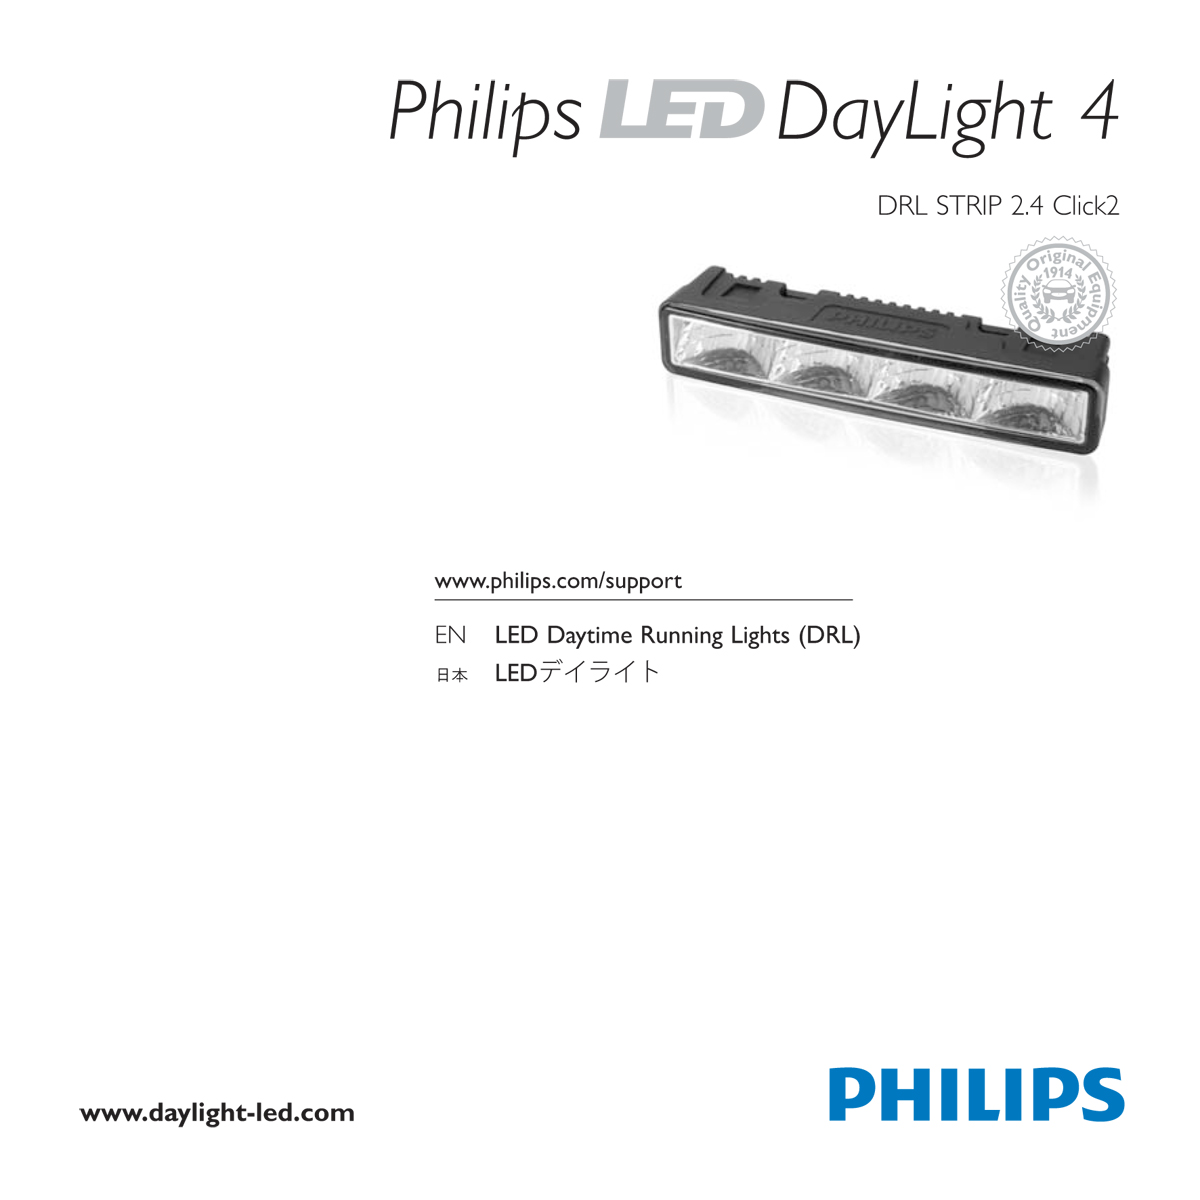 Philips LED DayLight 4 user guide - full pdf version